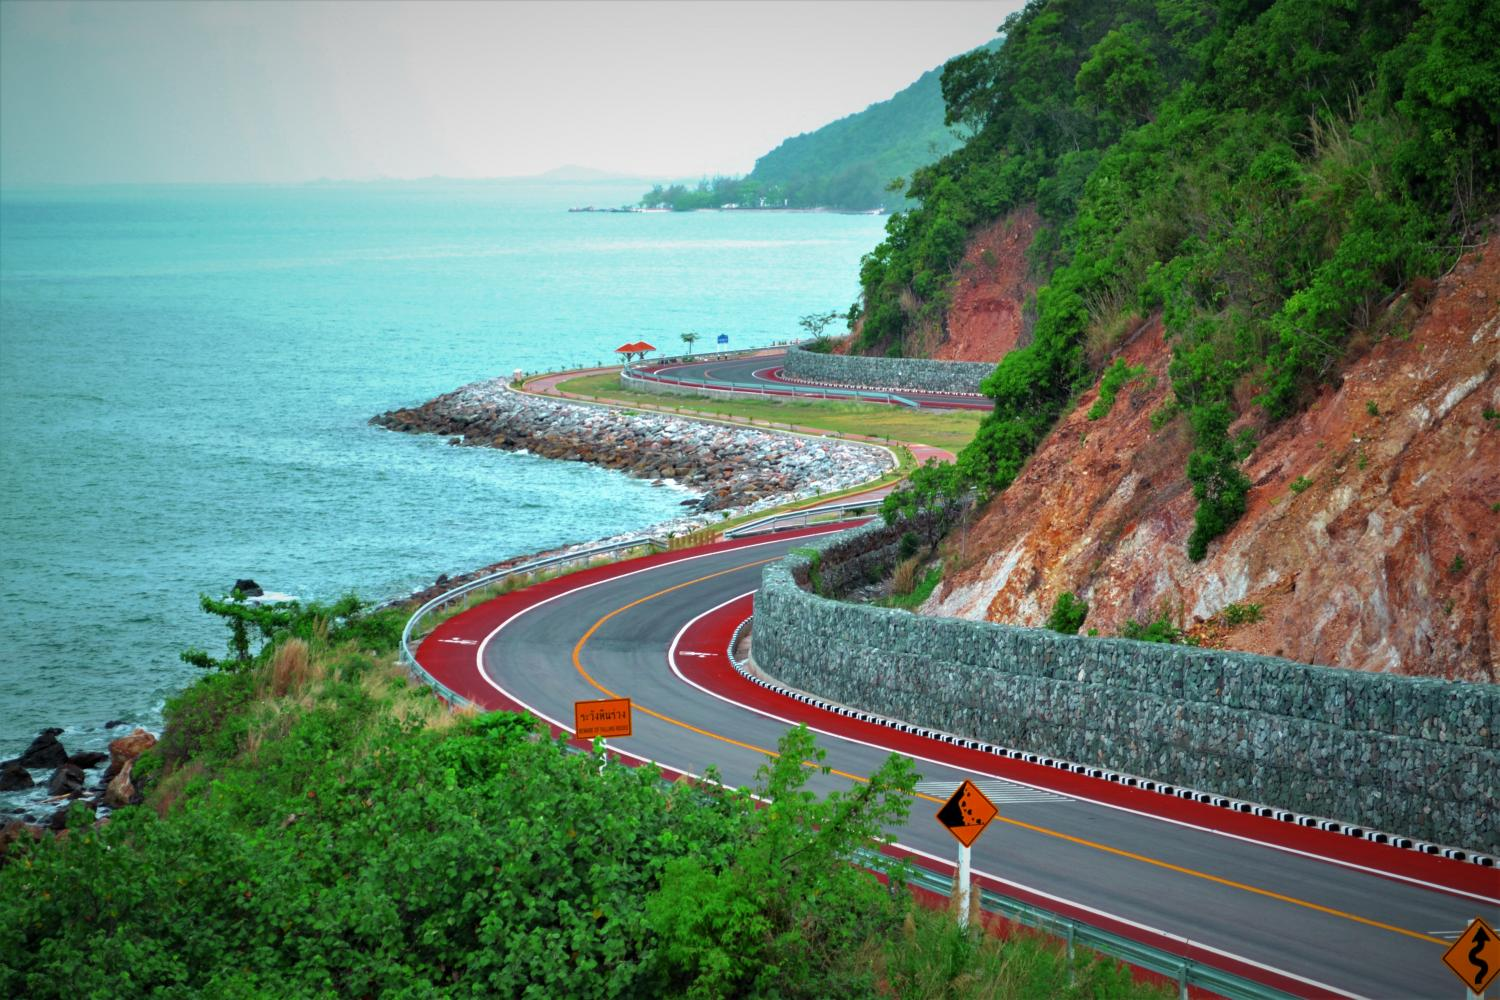 A scenic stretch of royally-initiated Chaloem Burapha Chonlathit Road meanders along the coast in Chanthaburi.(Department of Rural Road photo)